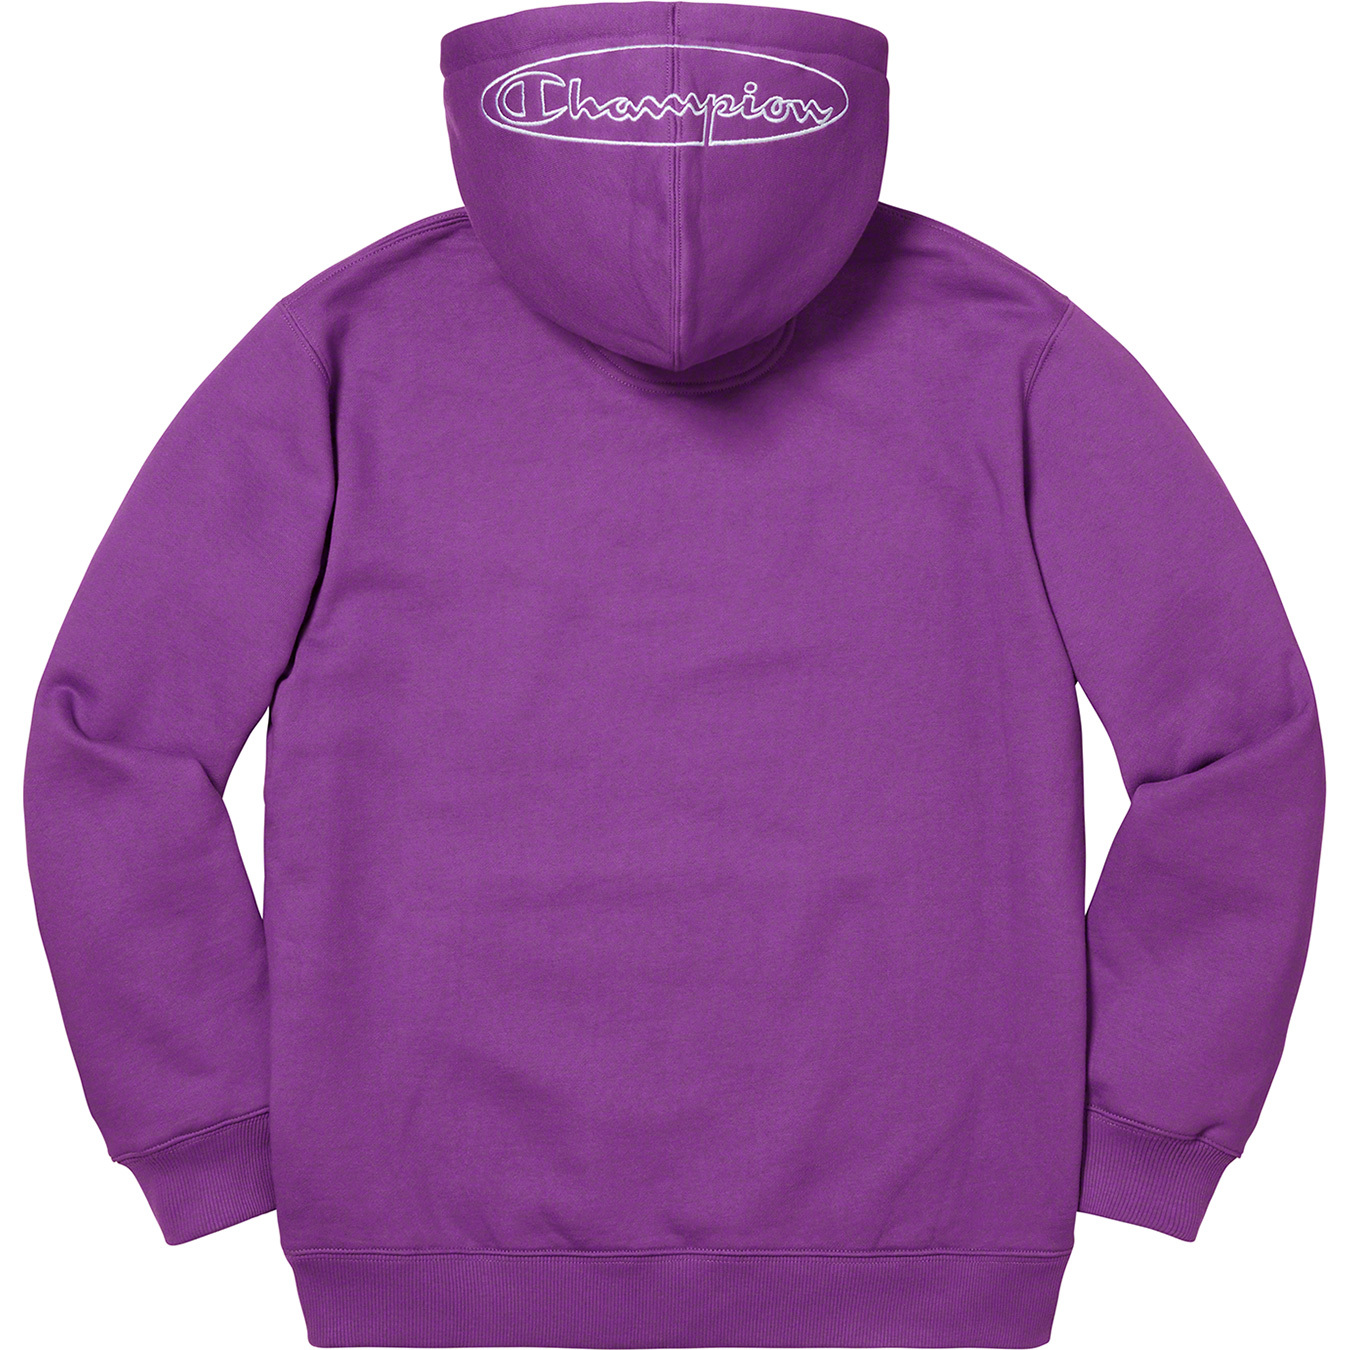 supreme-champion-outline-hooded-sweatshirt-19ss-week11